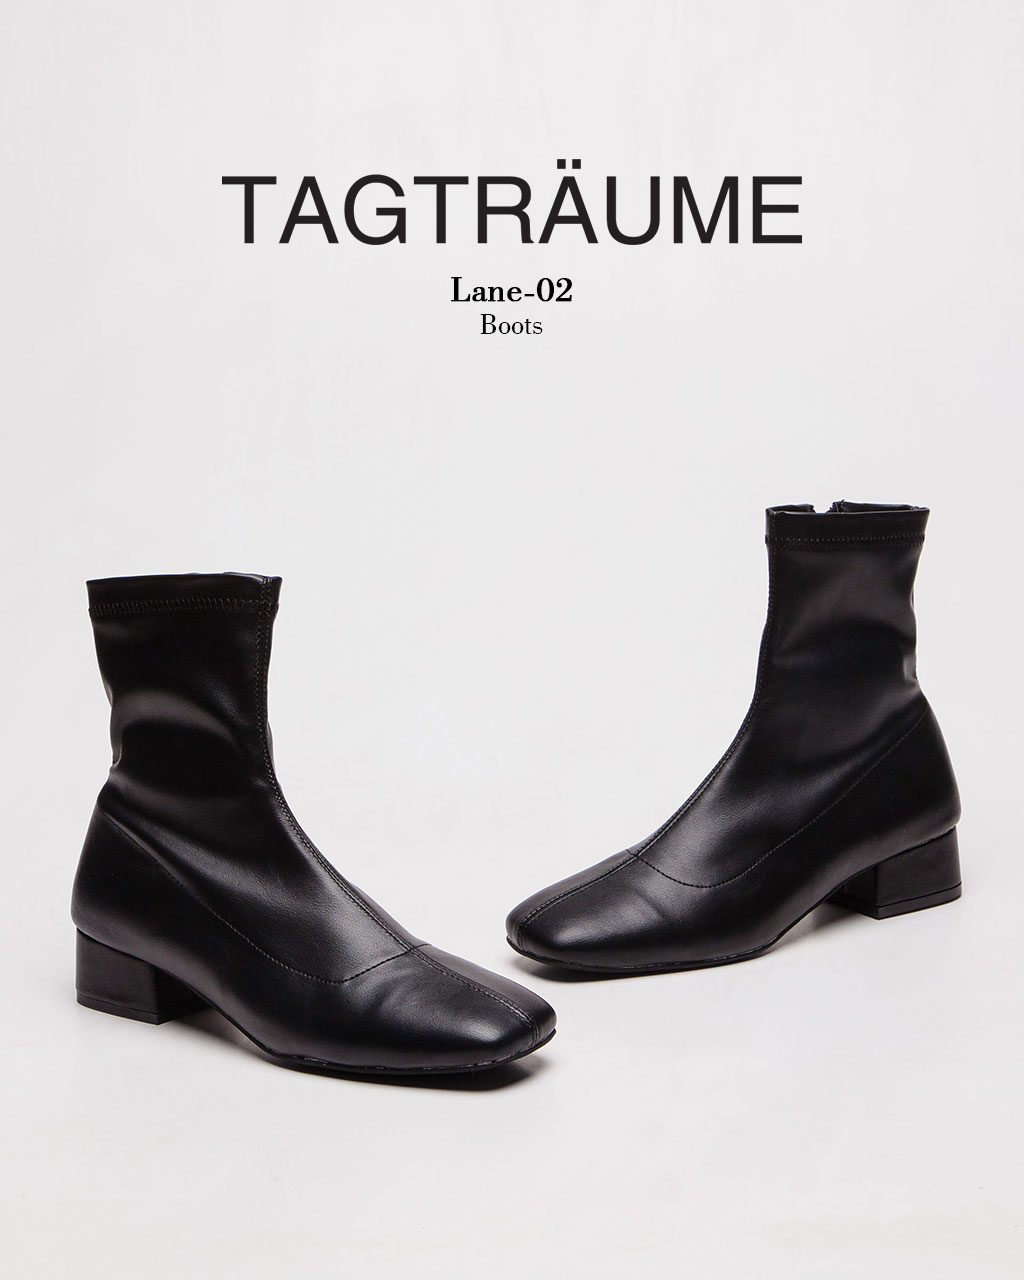 Tagtraume Lane-02 - Black PU(블랙 PU)